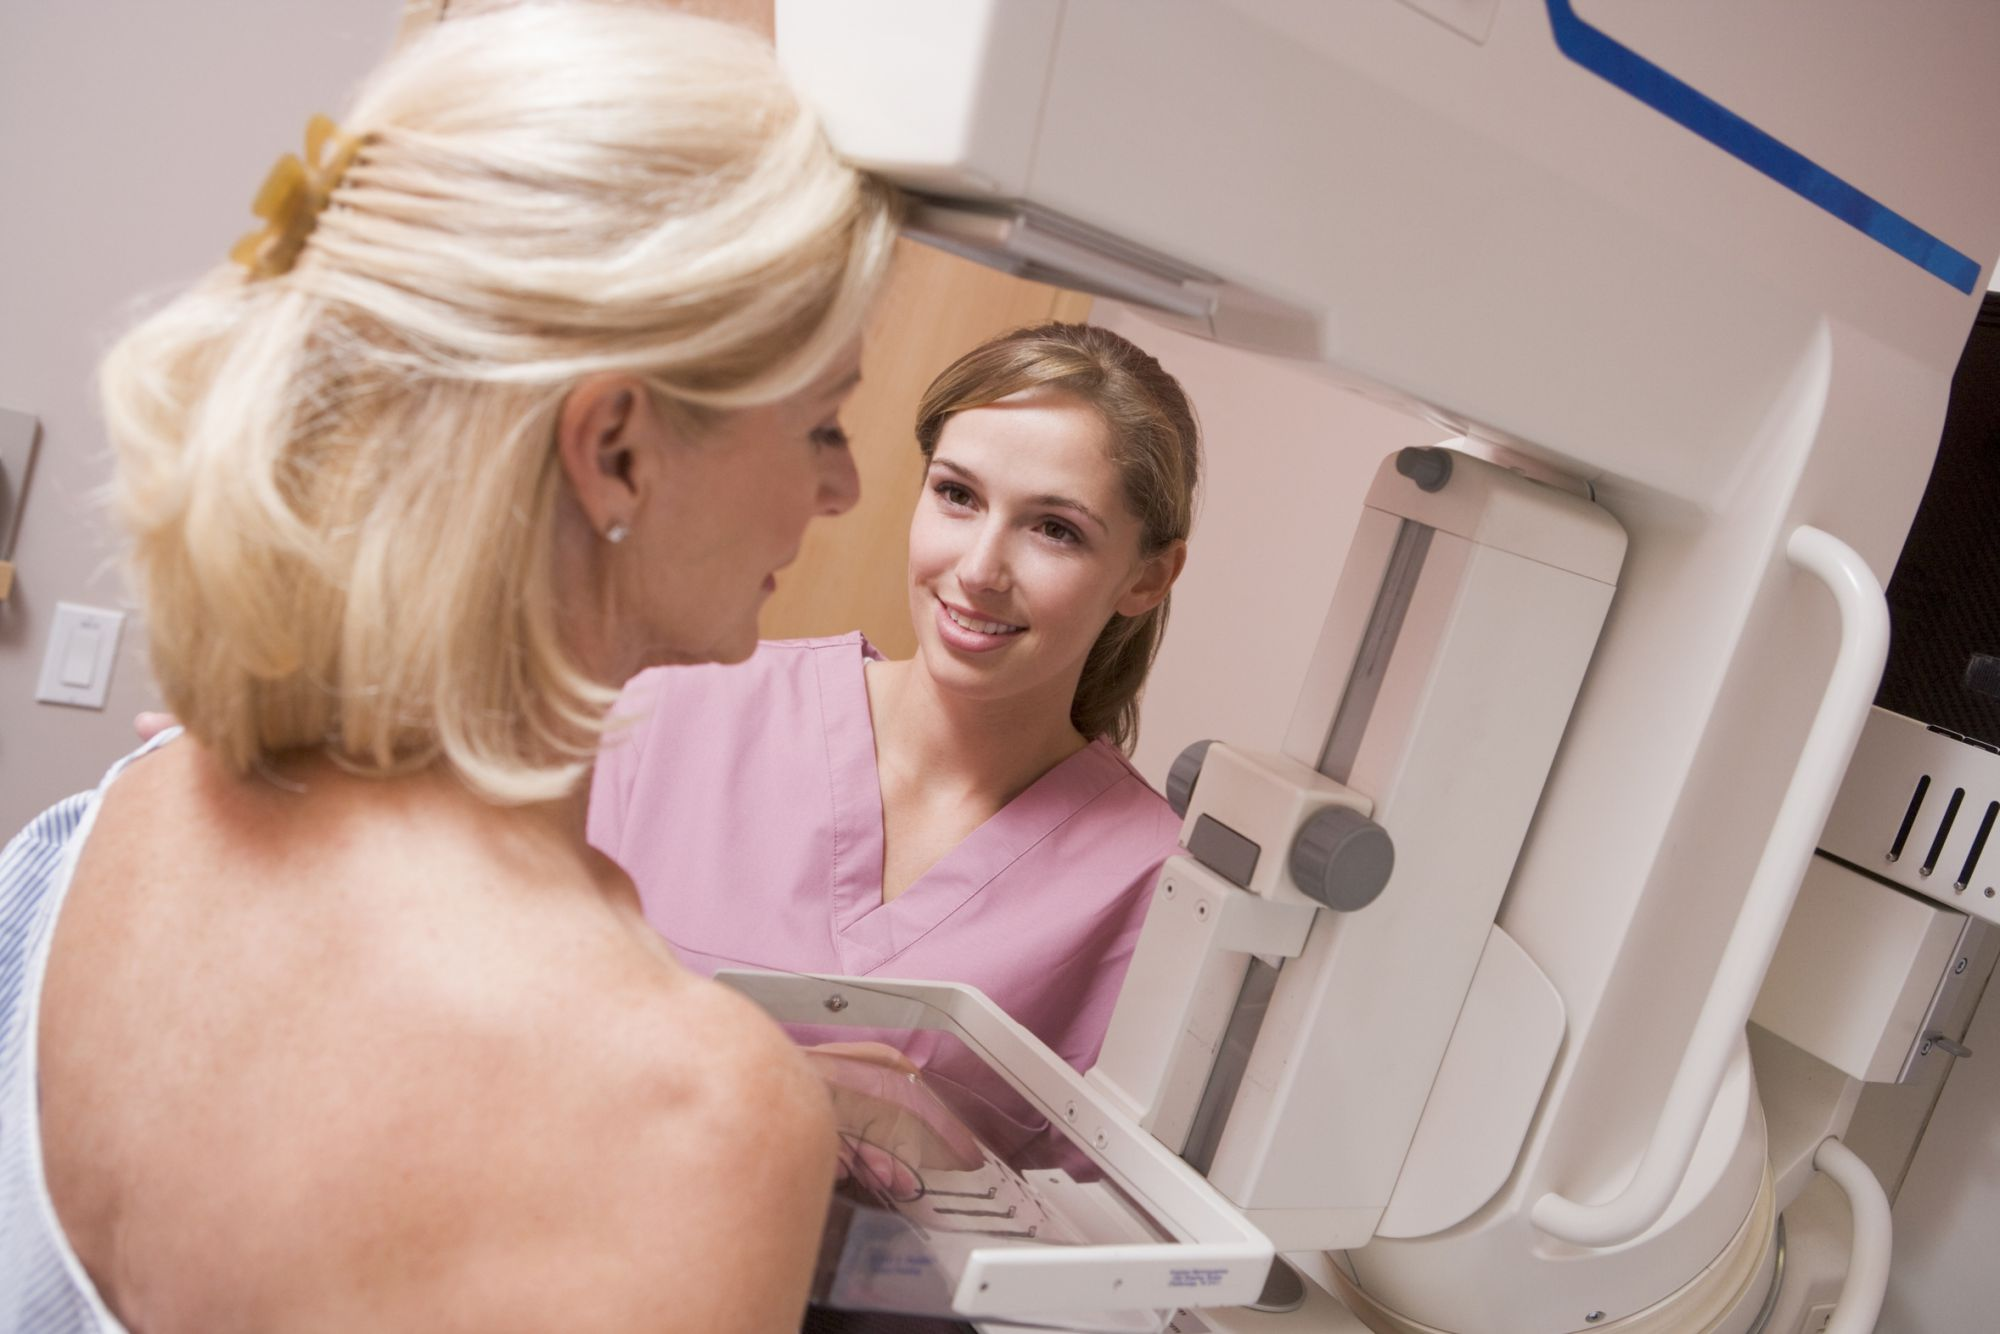 The breast must be compressed to obtain high quality mammography images. © Monkey Business/Fotolia